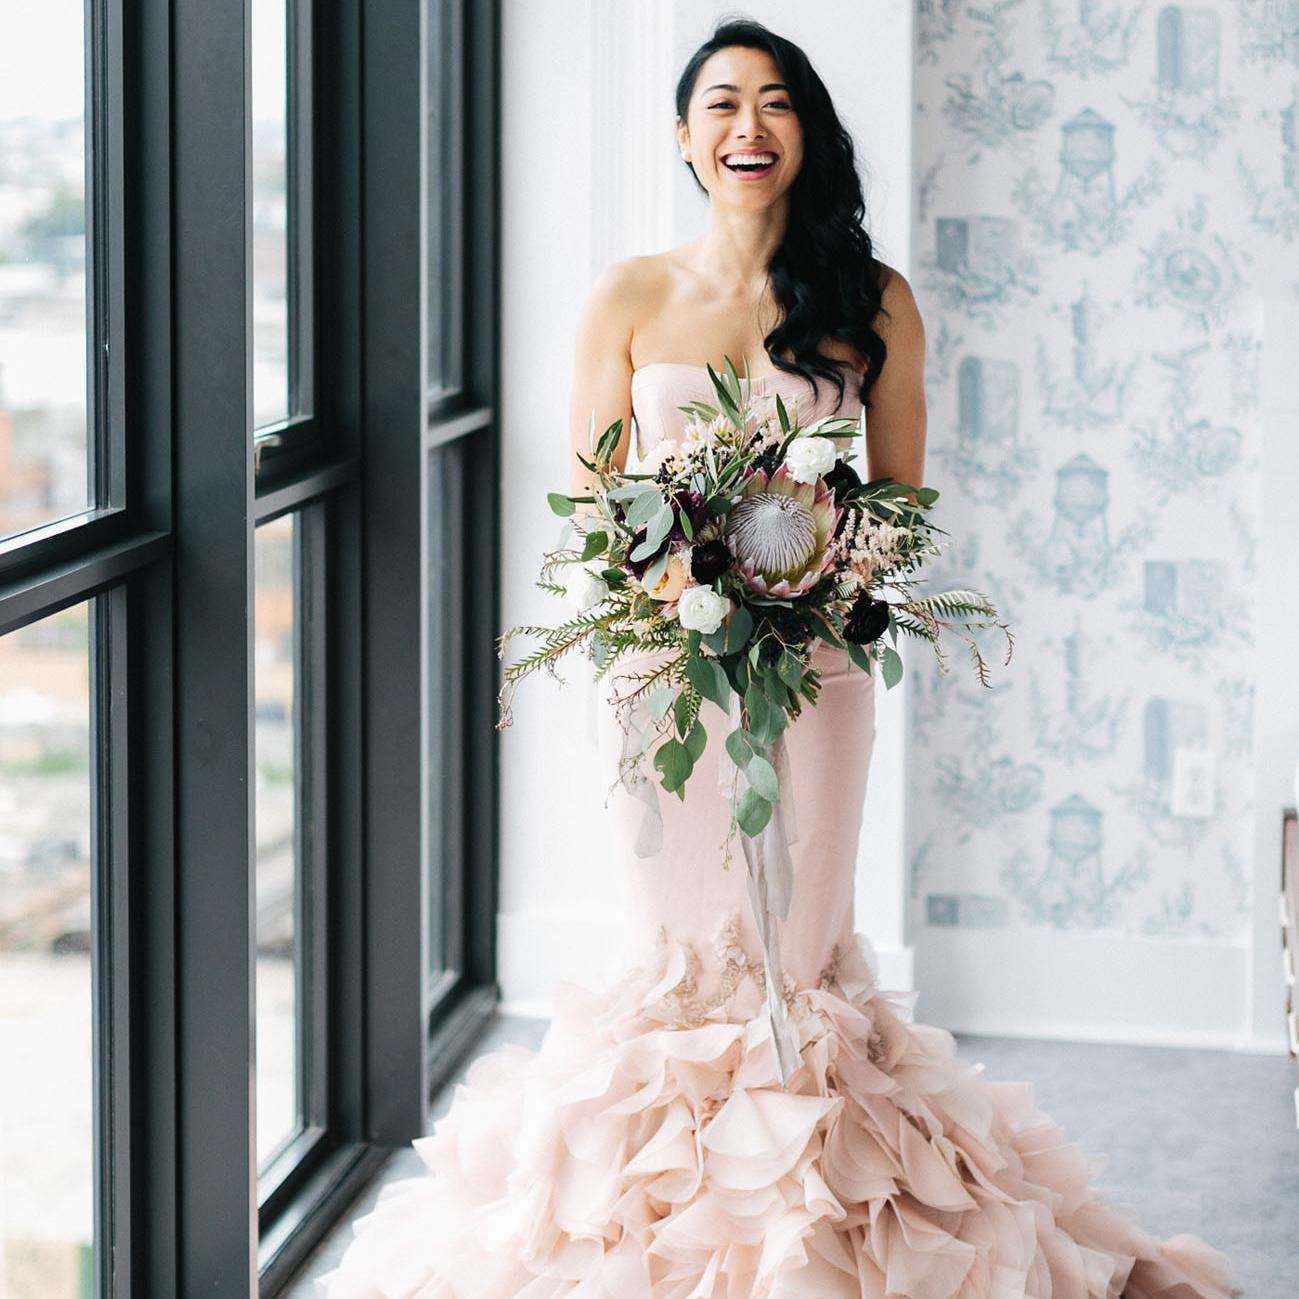 e8d7965043 83 Colorful Wedding Dresses That Prove You Don't Have to Wear White